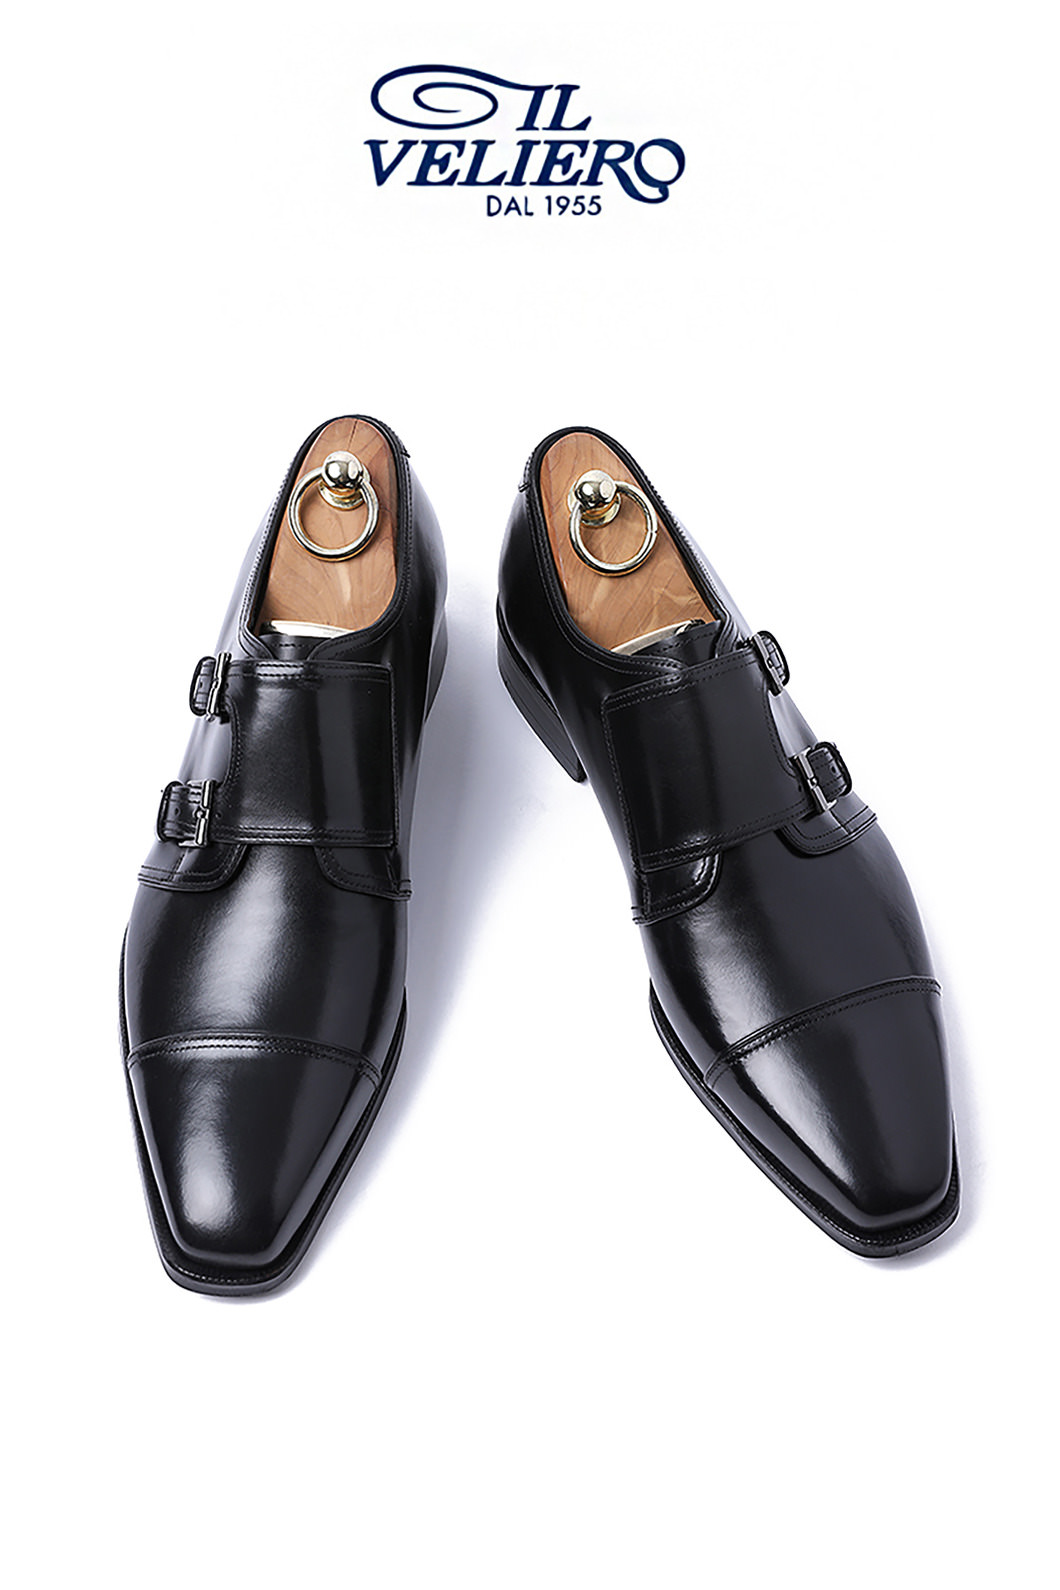 Take488 Artisan ITALY ILVELIERO Double Monk Shoes-BLACKLIMITED PRODUCT